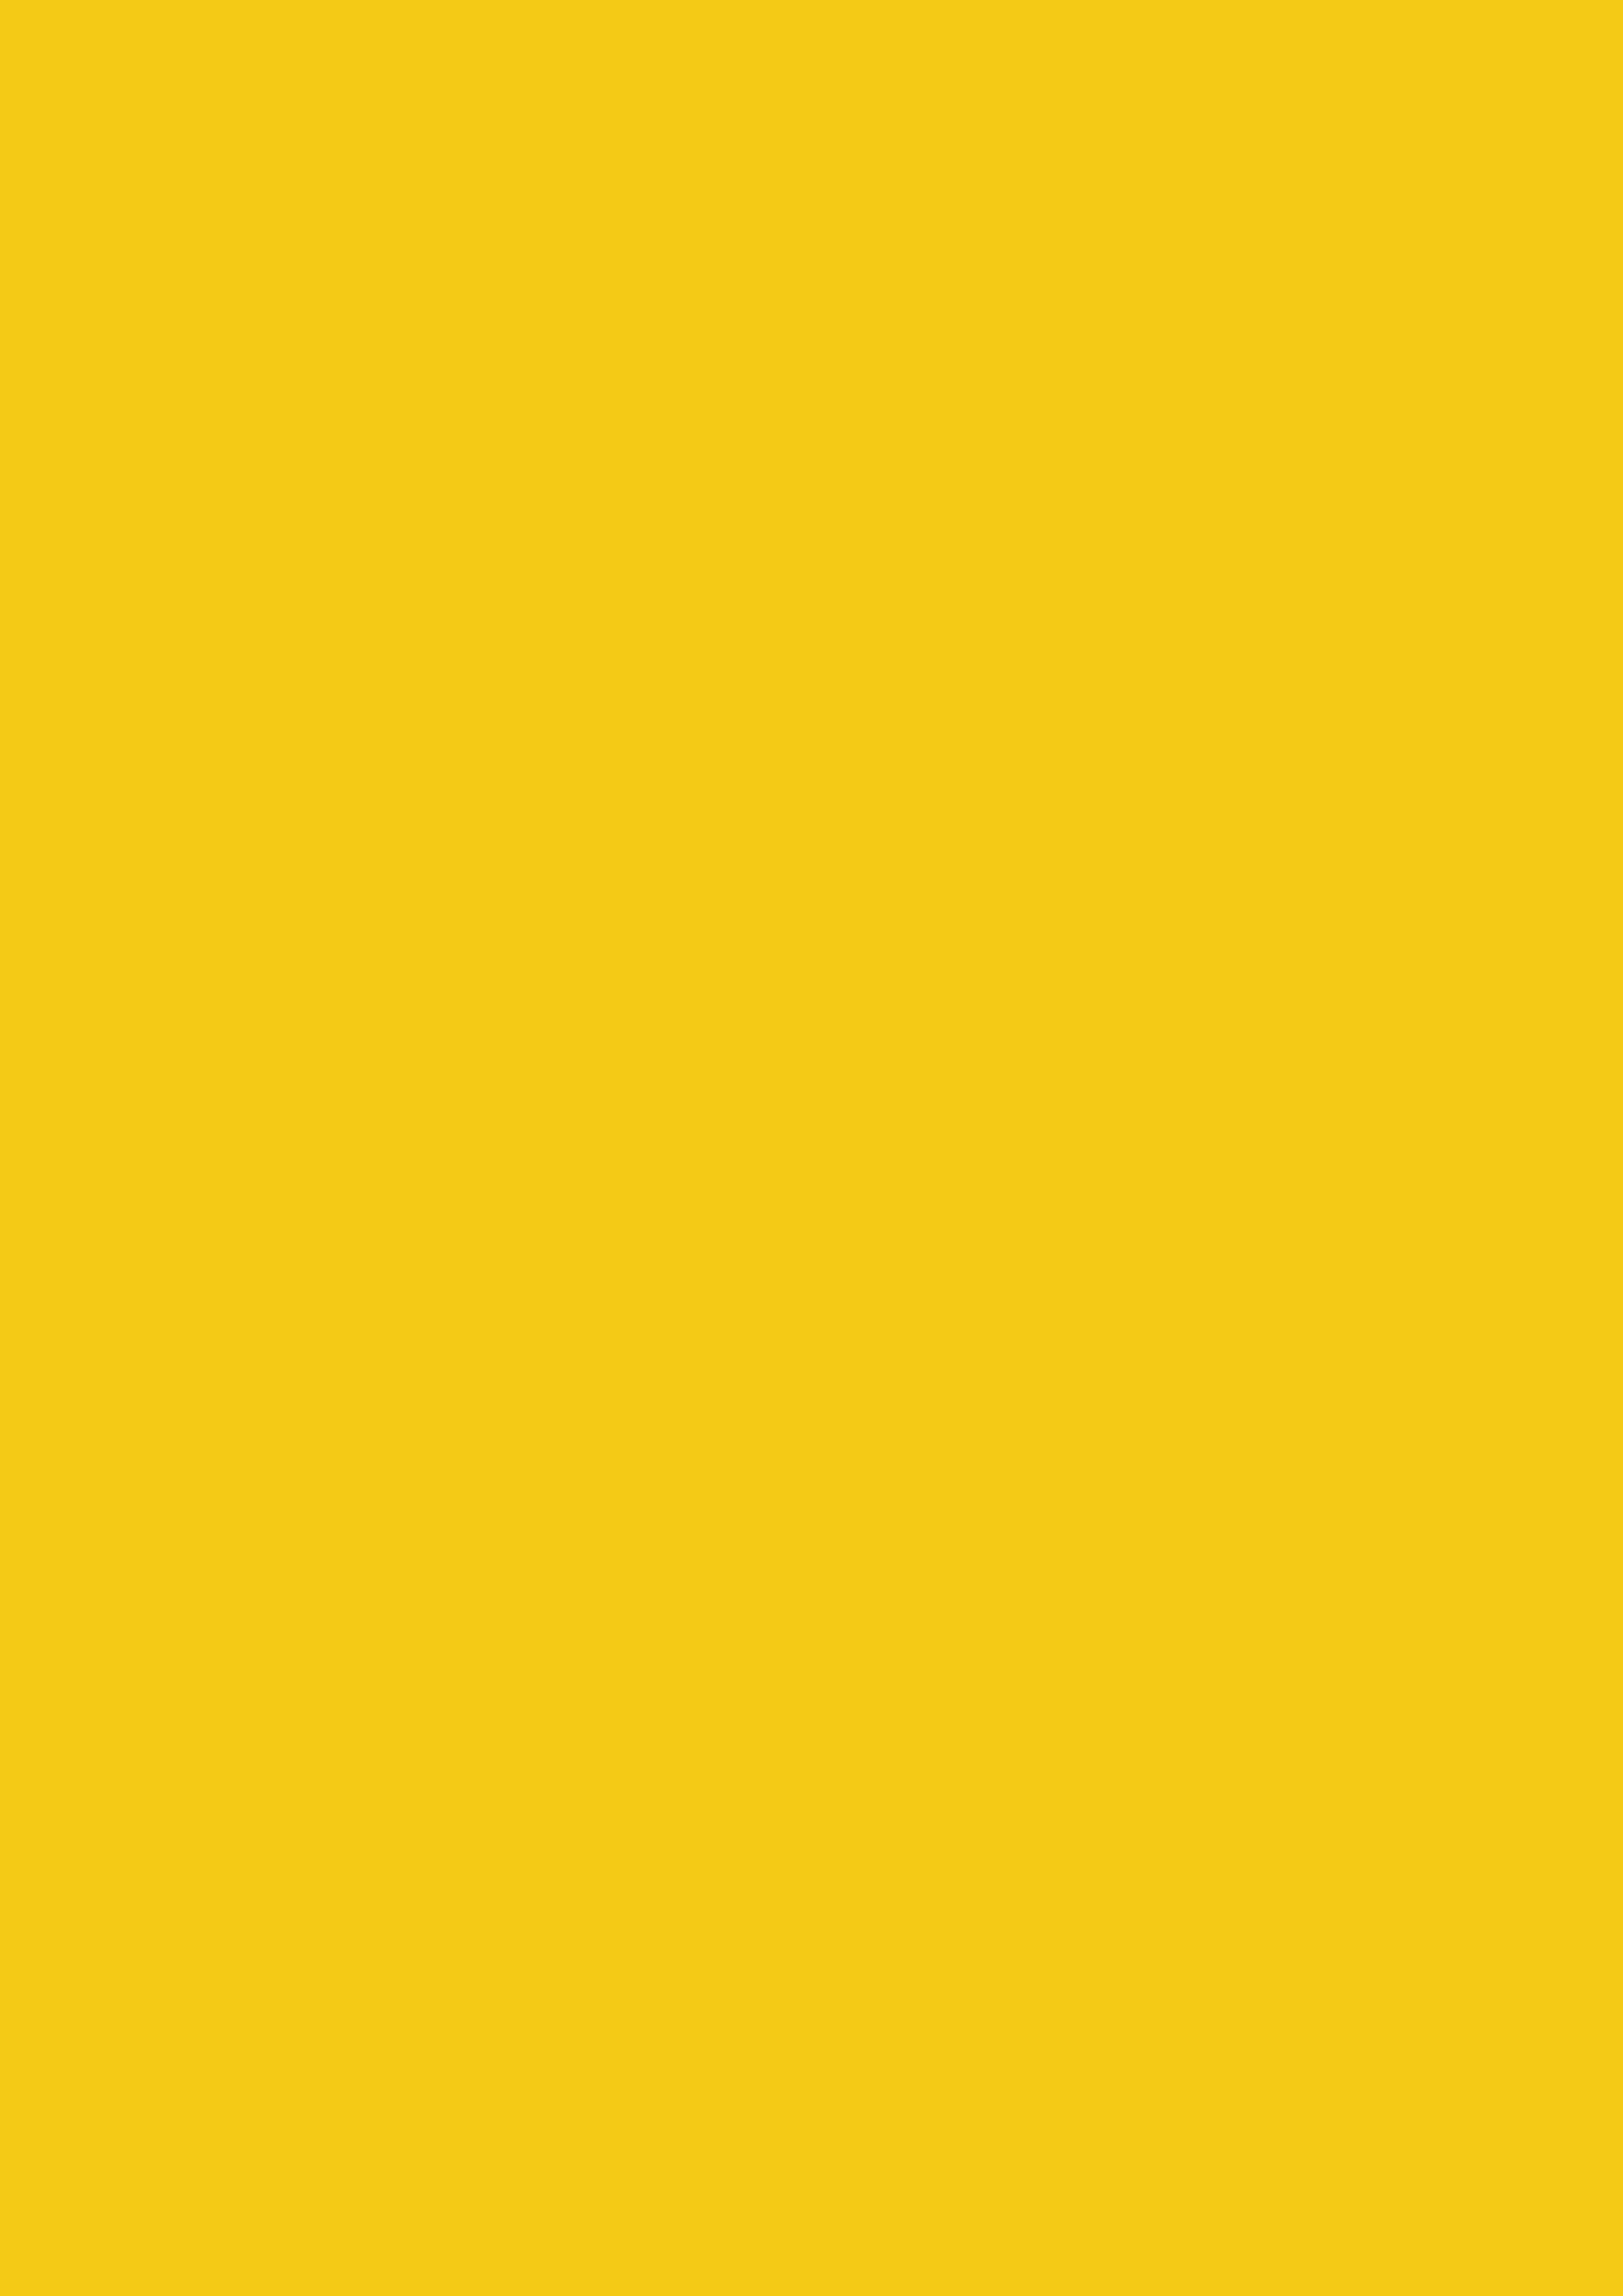 2480x3508 Jonquil Solid Color Background